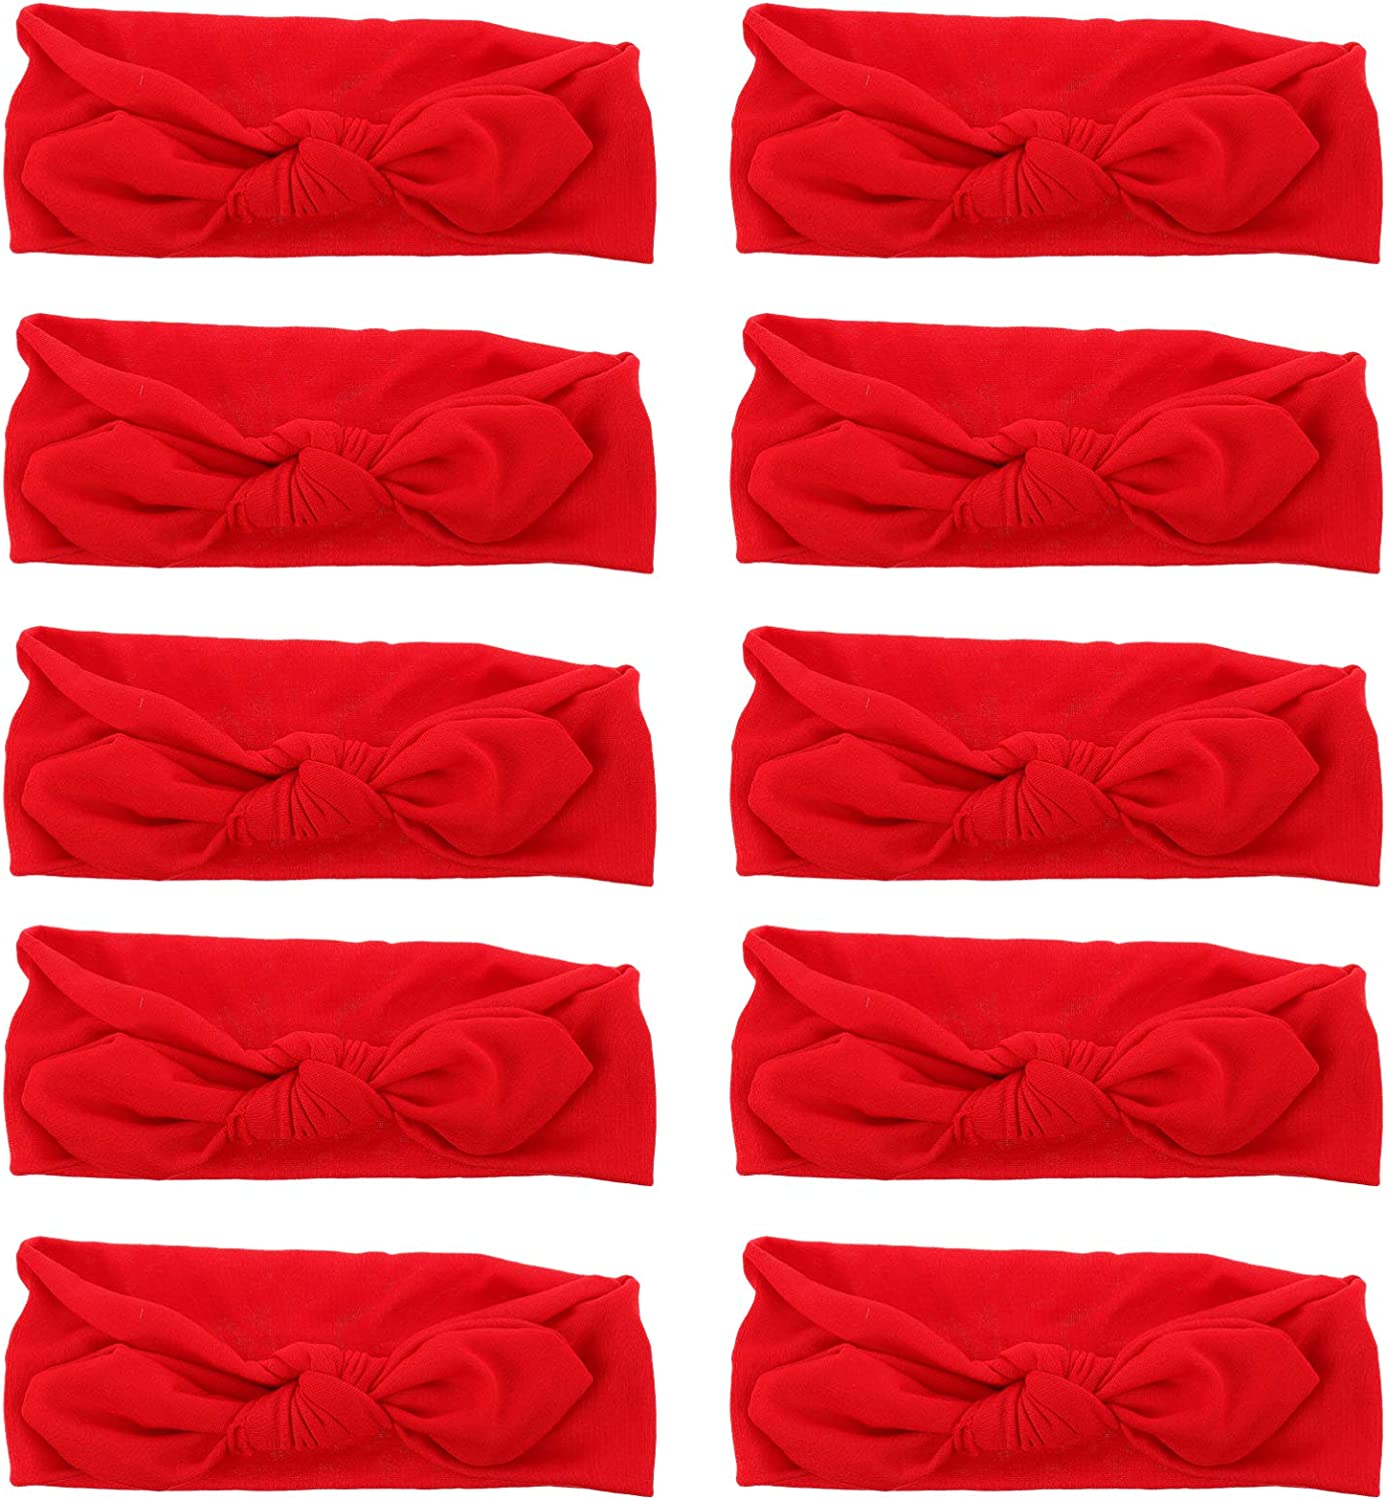 Beaupretty 10Pcs Christmas Bow Knotted Headbands Criss Cross Sport Turban Head Wrap Yoga Face Wash Hair Band Hair Accessories Gift for Women Teen Girls(Red)